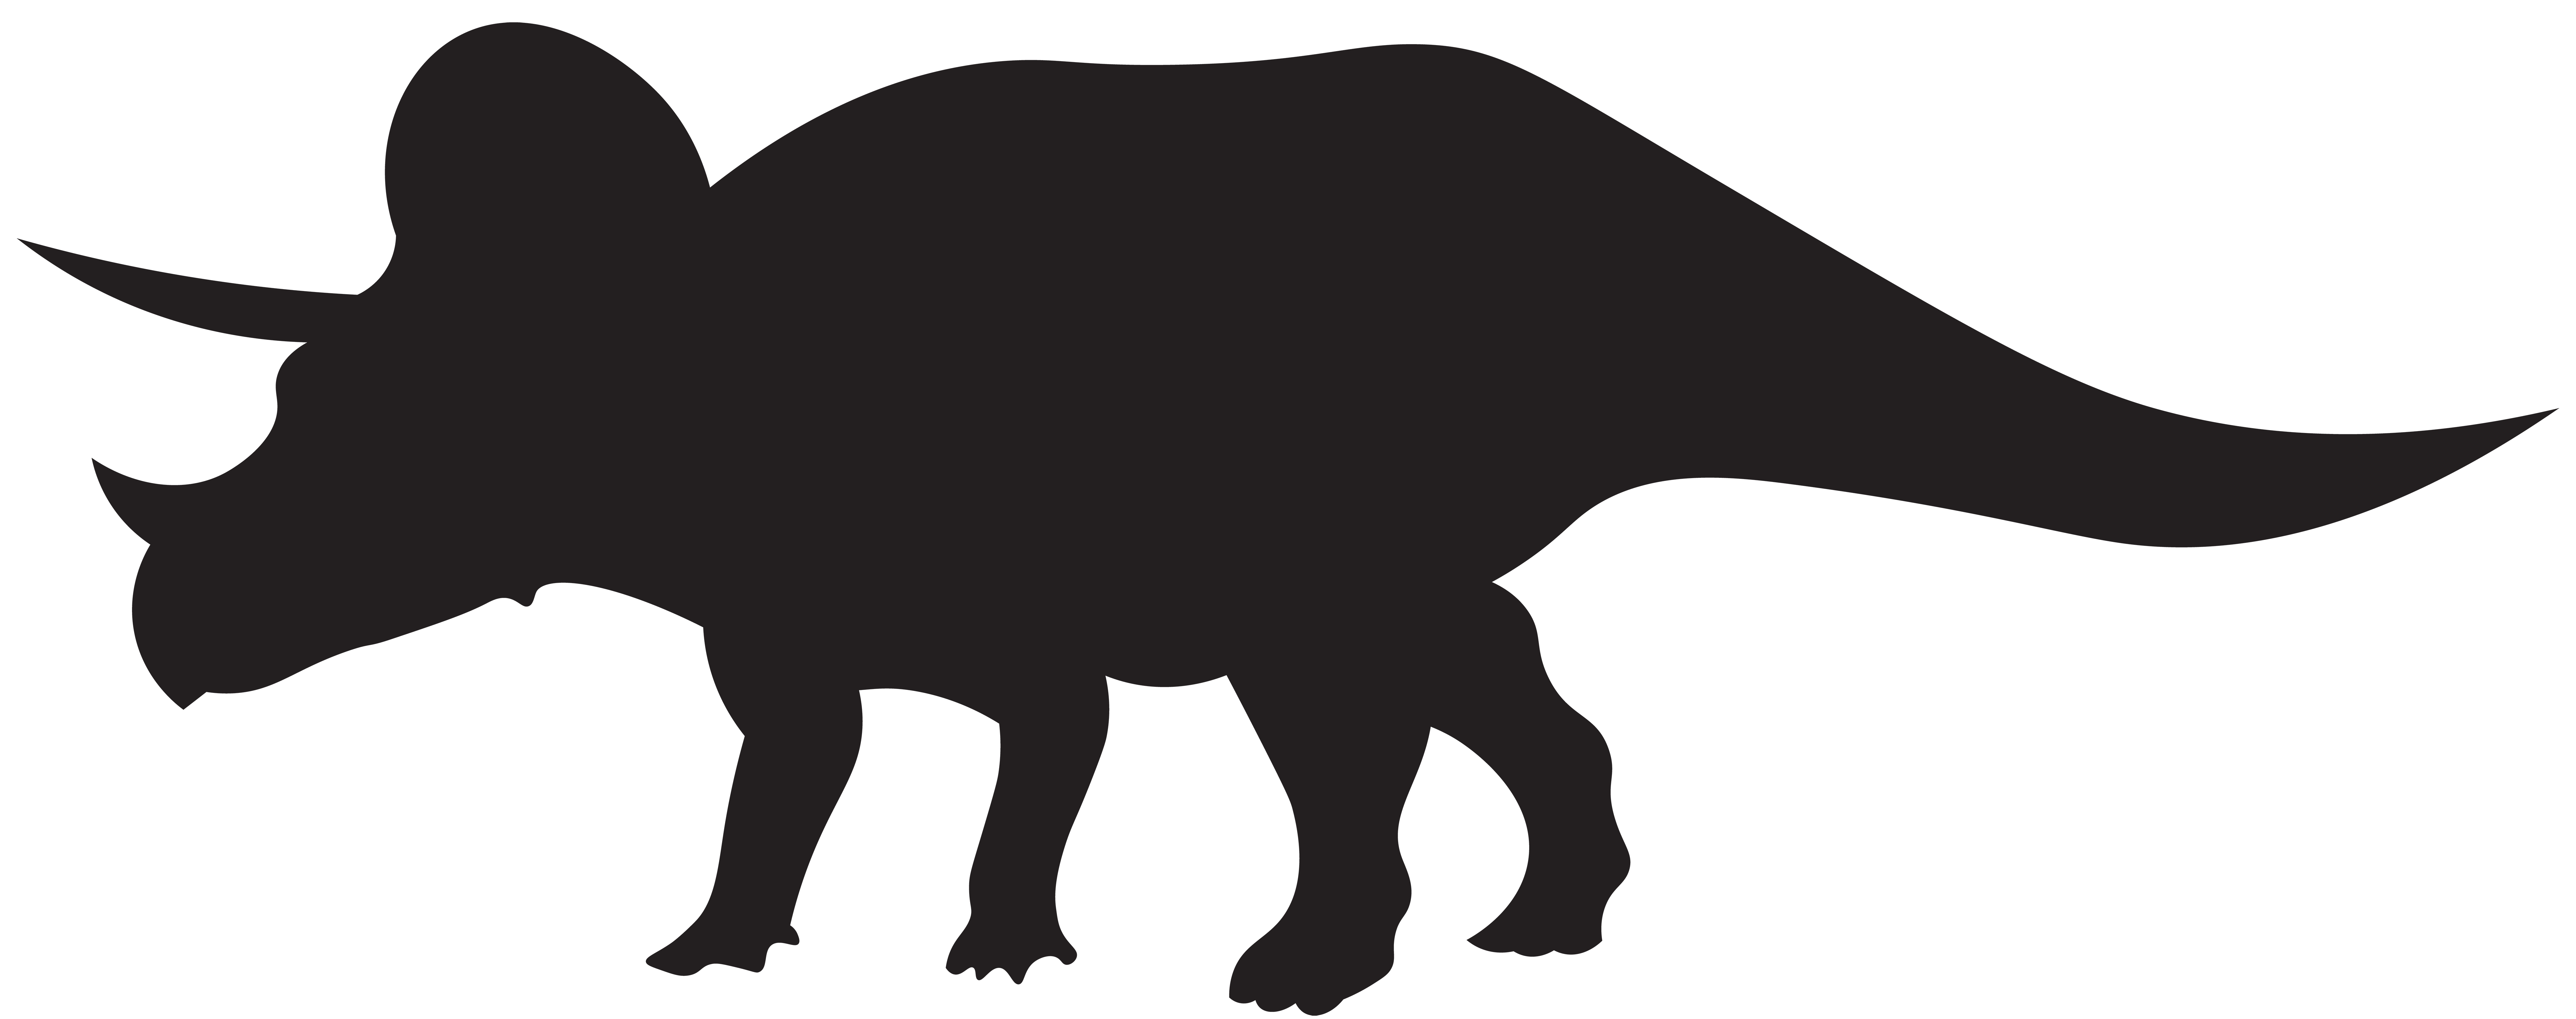 clipart black and white library Mail carrier clipart black and white. Dinosaurs triceratops silhouette png